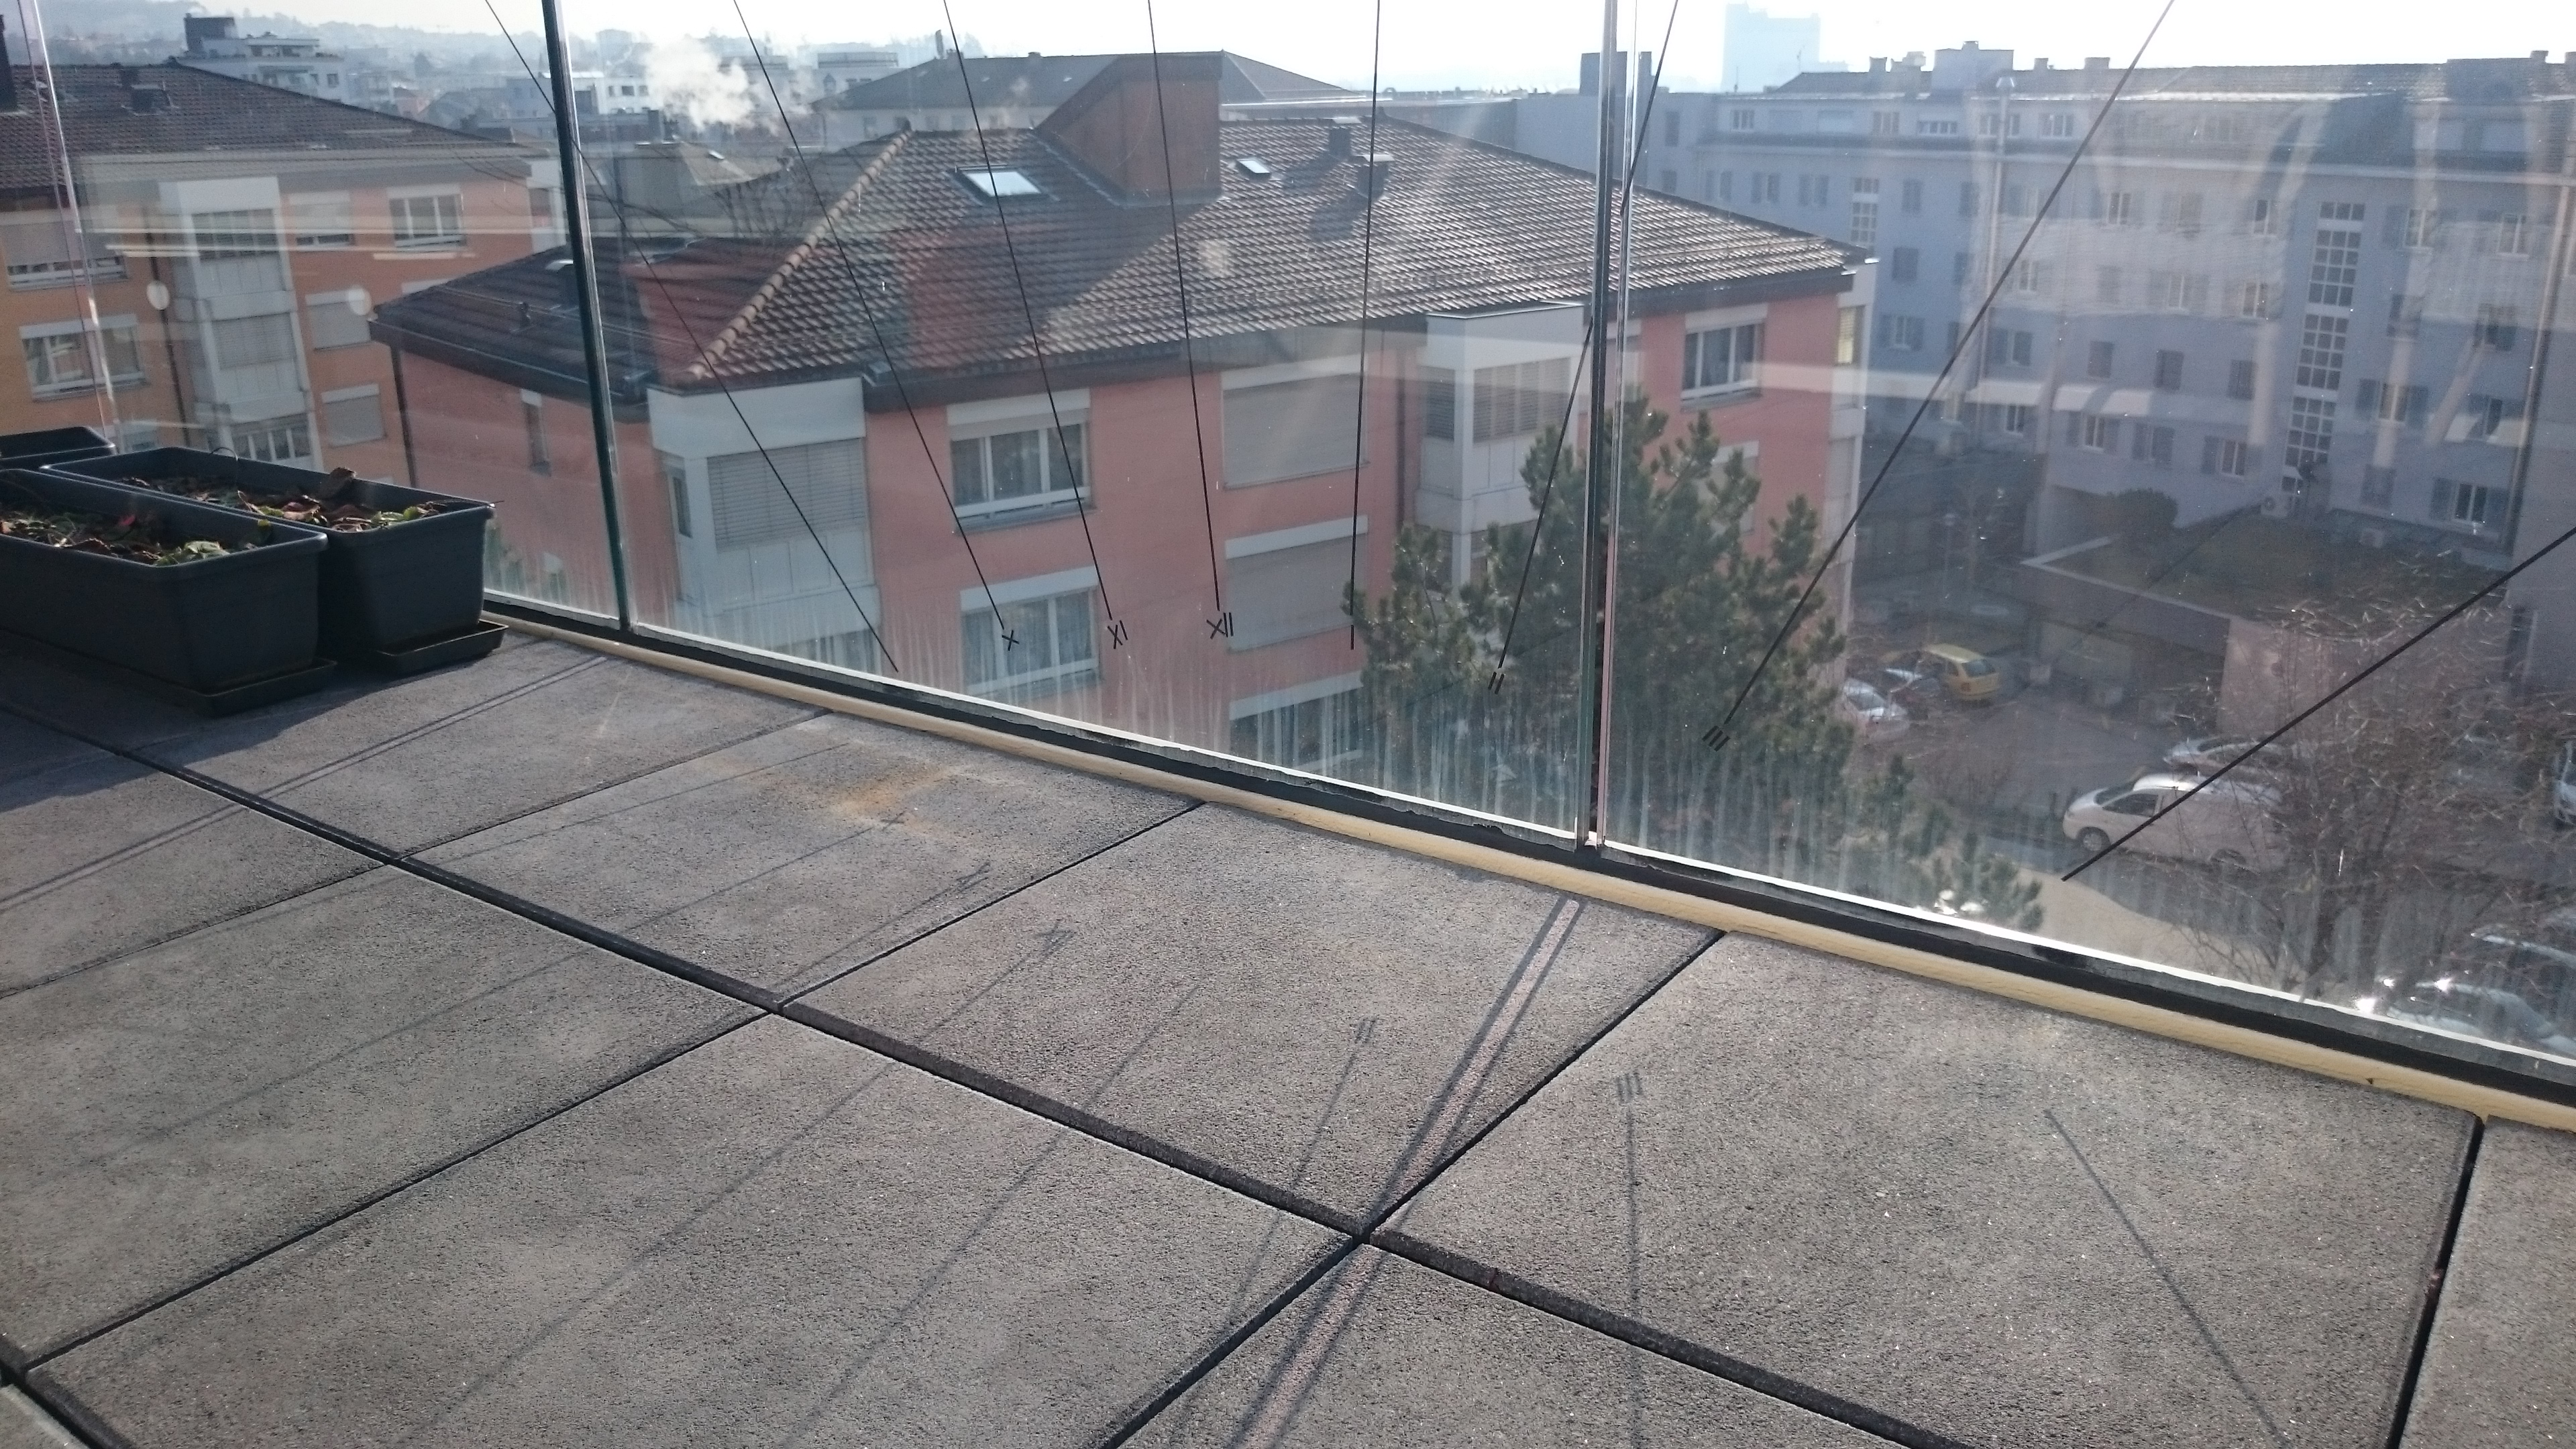 Picture of Inverted Sundial on My Balcony